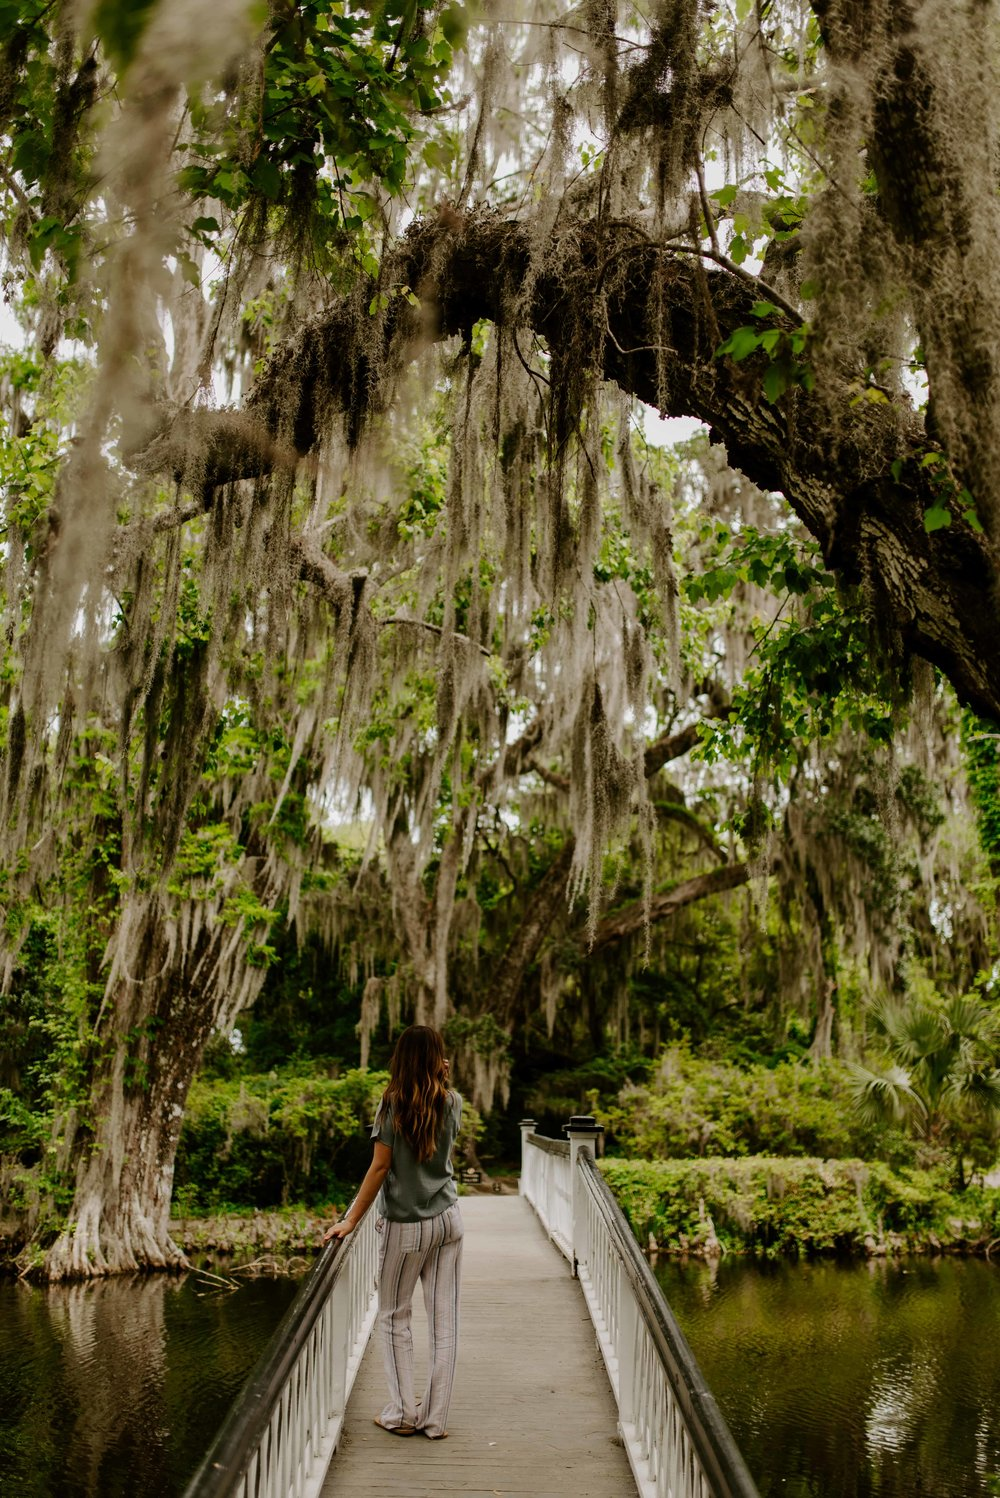 charleston-sc-city-guide-what-to-do-and-see-97.jpg